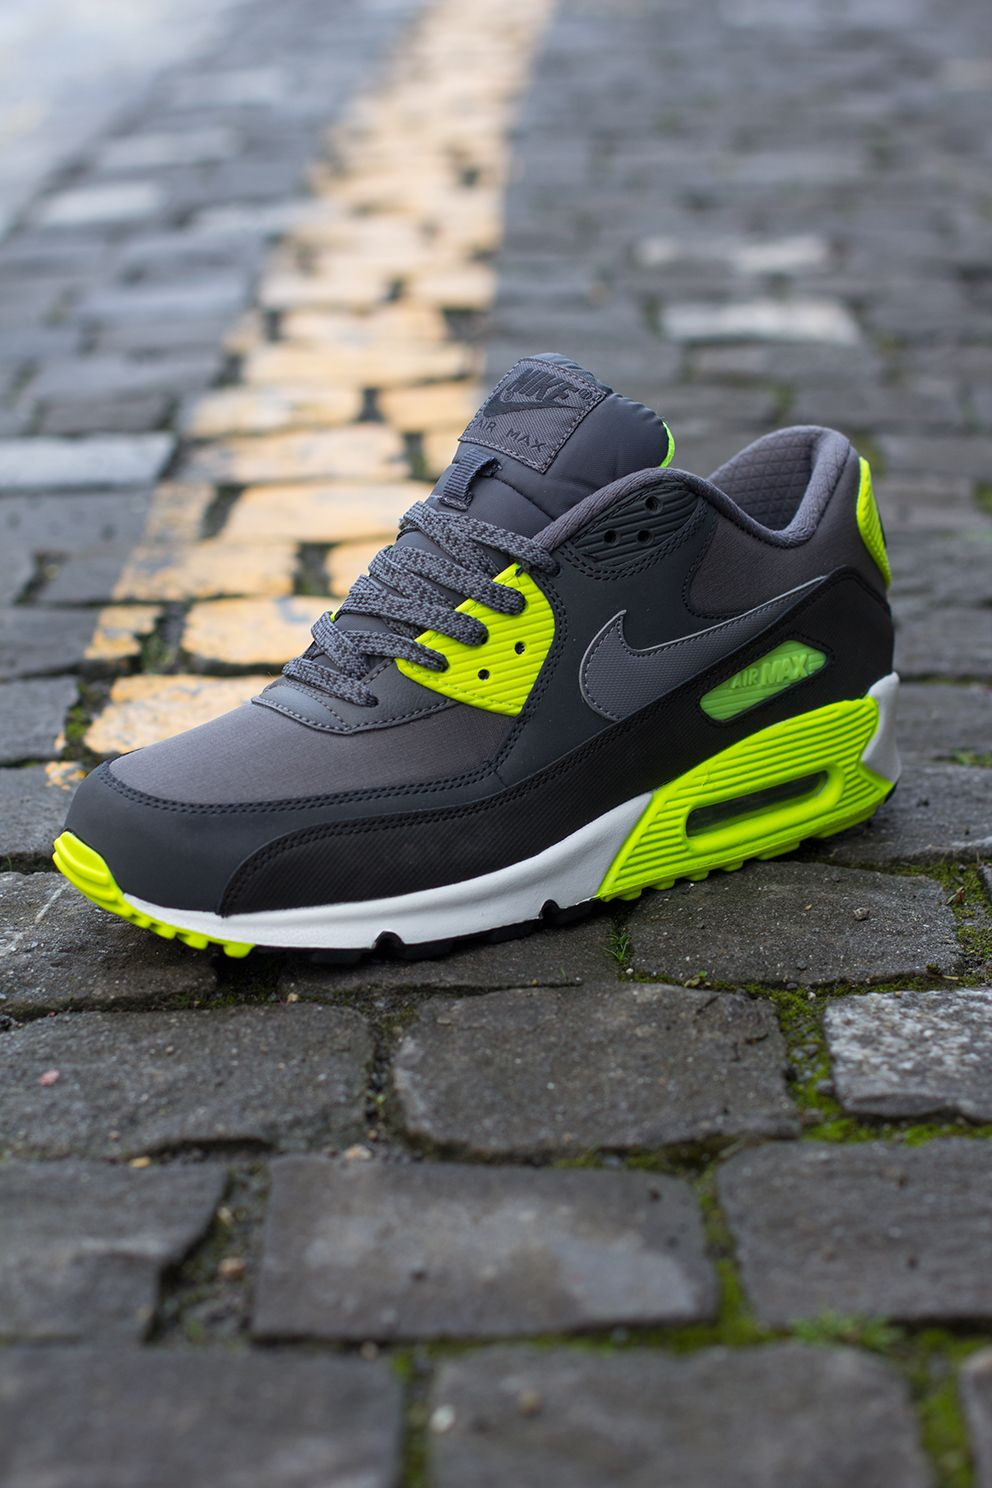 quality design 07f57 7344a Nike Air Max 90   Ultrasstuff   Nike shoes cheap, Nike shoes, Shoes